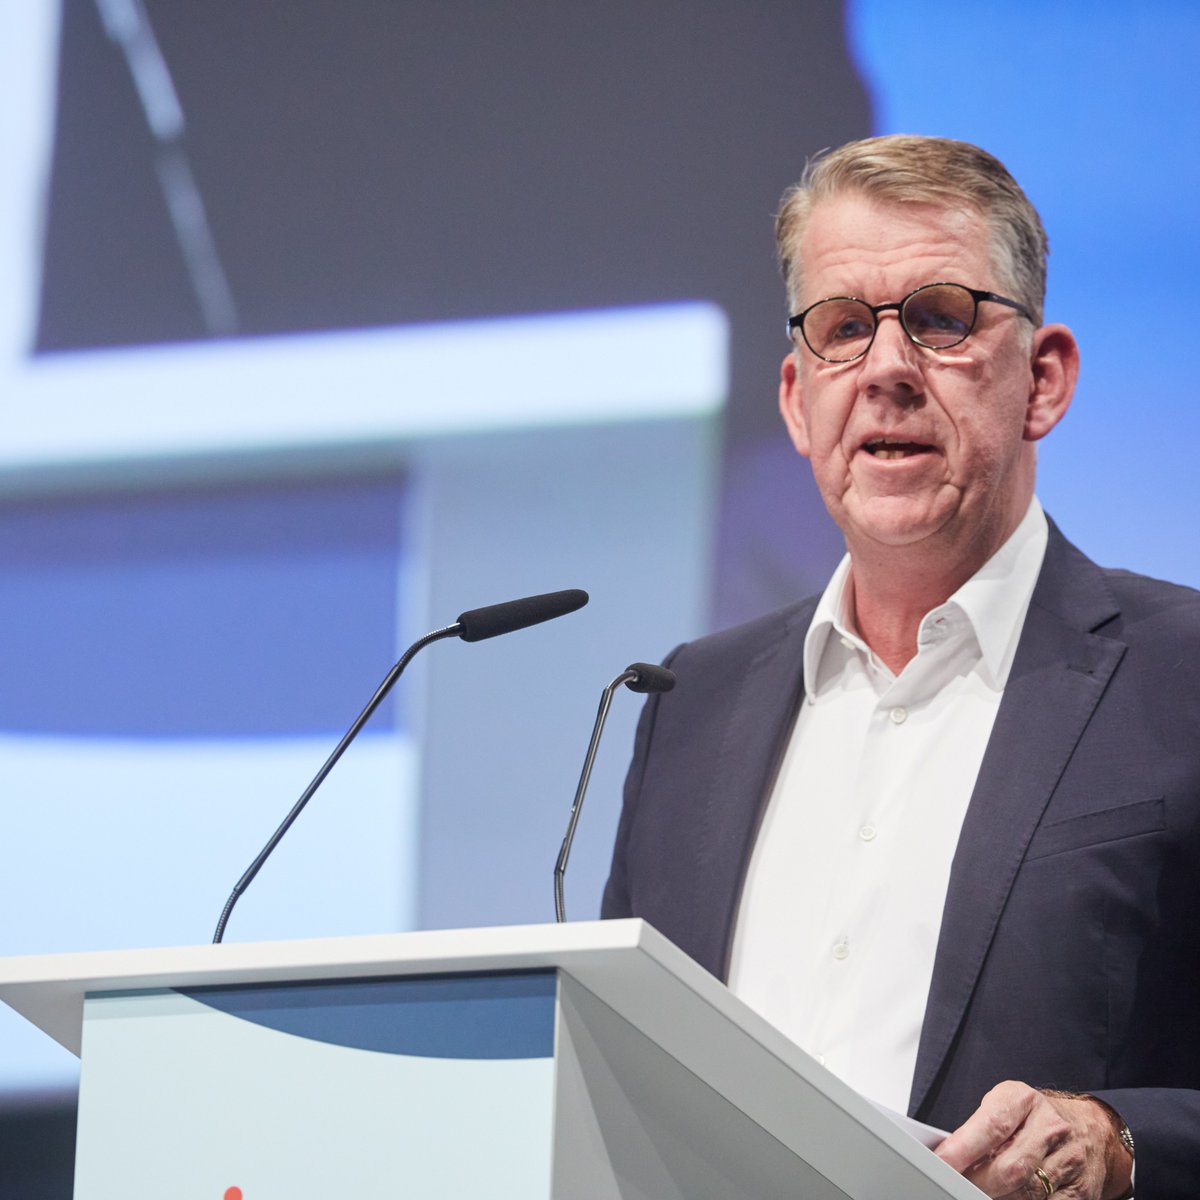 TUI supports #hydrogen as a solution to the global #CO2 problem 🌱🌍 »This requires a global solution and innovation. Hydrogen can play a crucial role as a long-term substitute for fossil fuels.« Fritz Joussen, CEO TUI Group, at the #TUIAGM this week. https://t.co/Jg9AZEVBxA